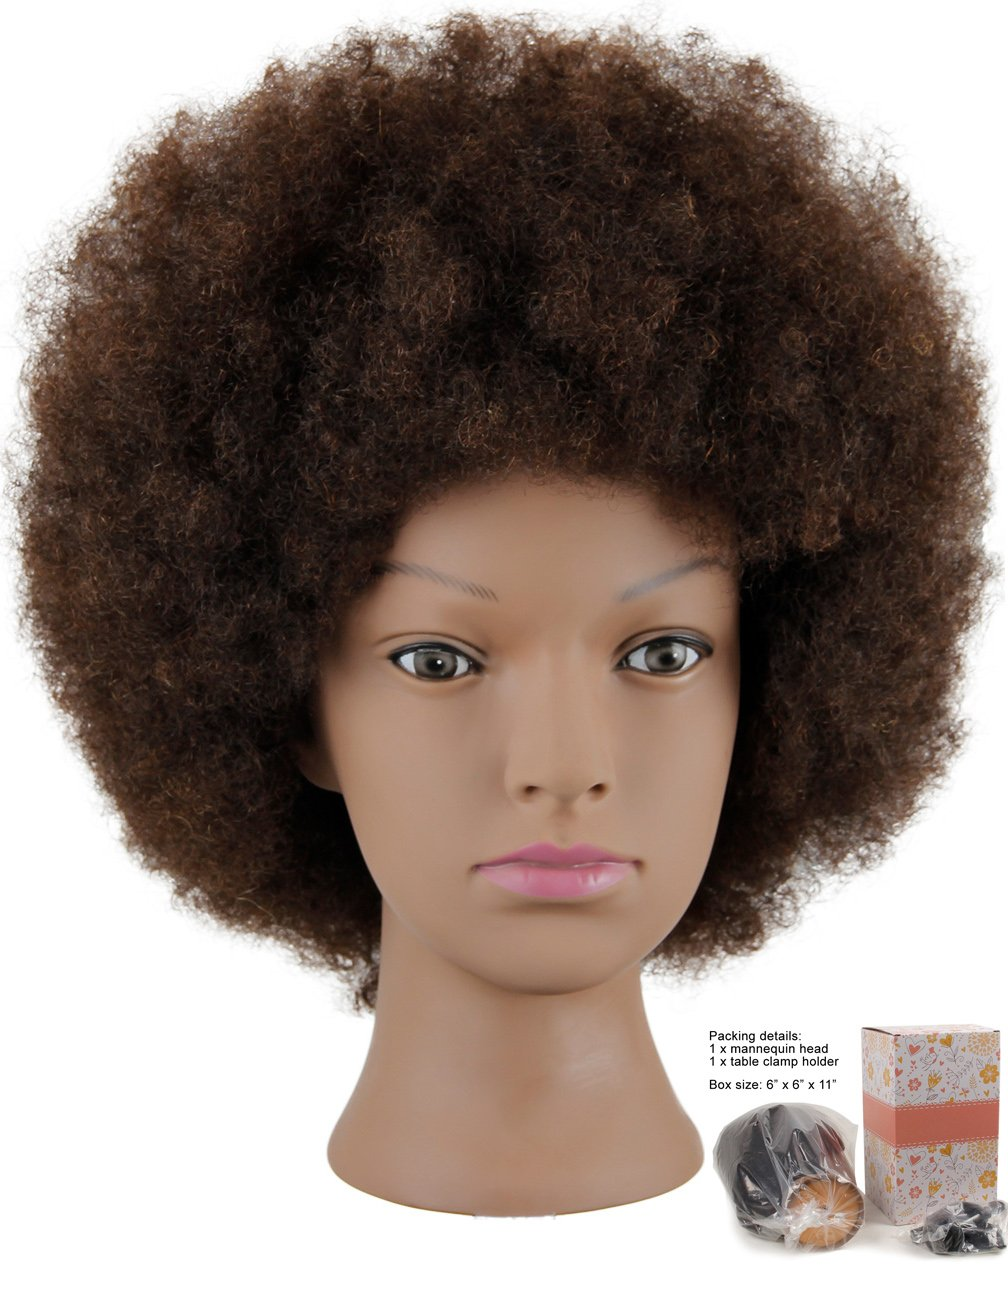 Mannequin Head African American with 100% Human Hair Cosmetology Afro Hair Manikin Head for Practice Styling Braiding by Kalyx